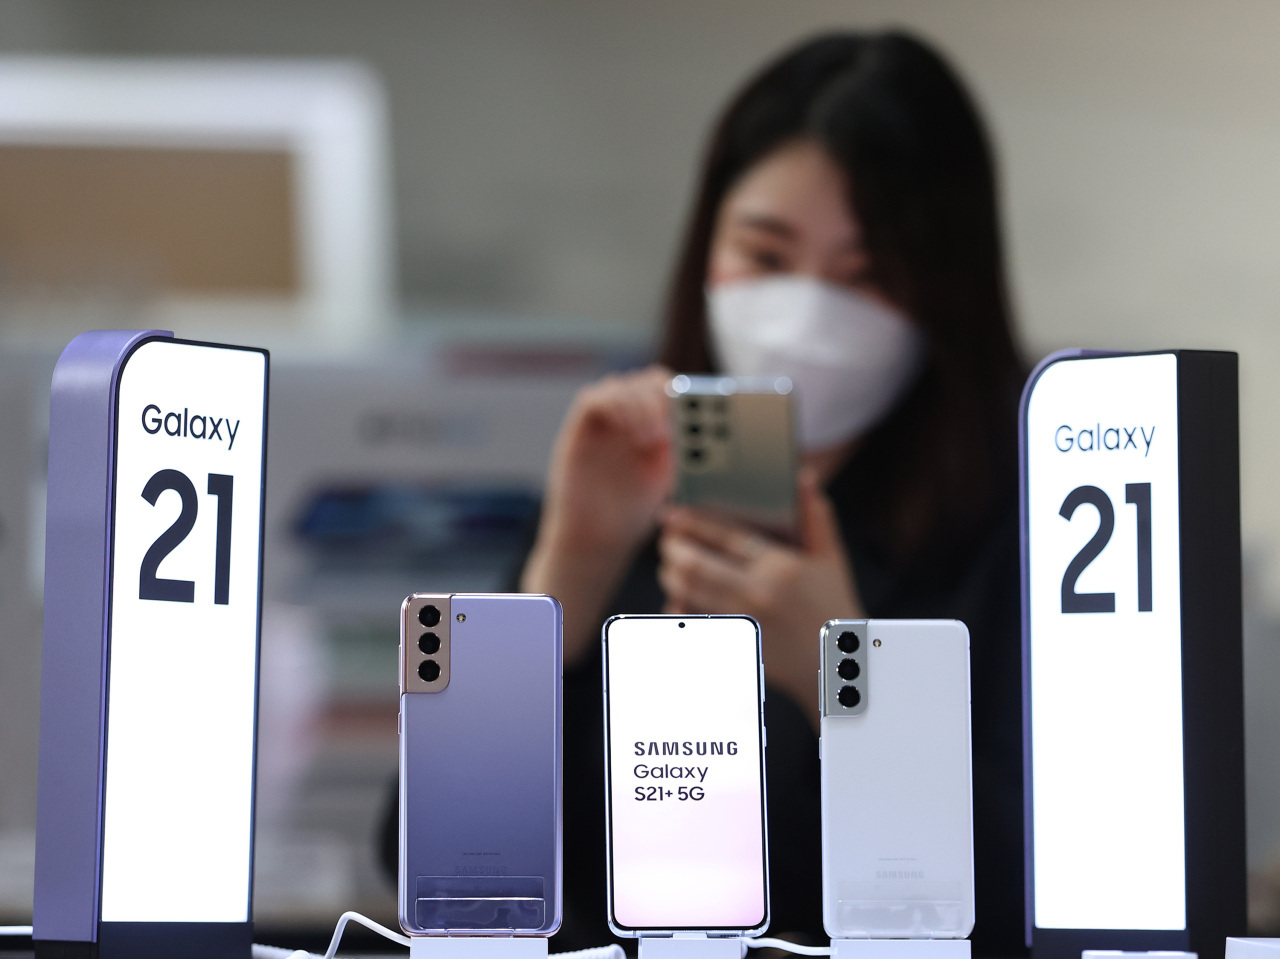 This photo taken Jan. 15, 2021, shows Samsung Electronics Co.'s Galaxy S21 smartphones displayed at a store in Seoul. (Yonhap)